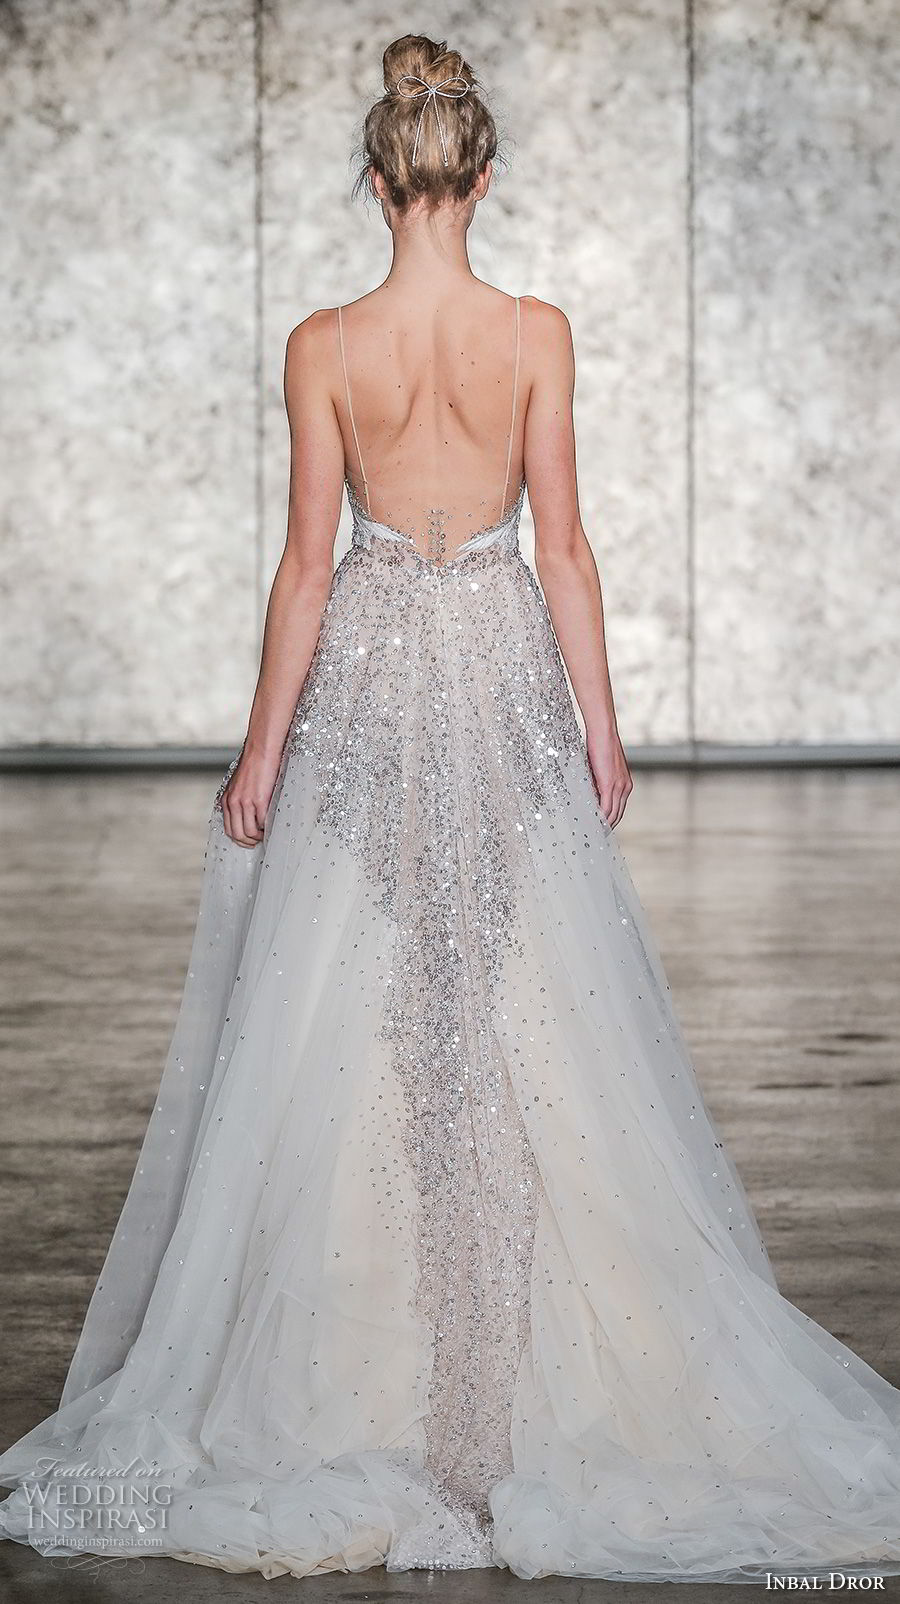 inbal dror fall 2018 bridal sleeveless spaghetti strap sweetheart neckline heavily embellished bodice romantic a line wedding dress open back chapel train (18) bv